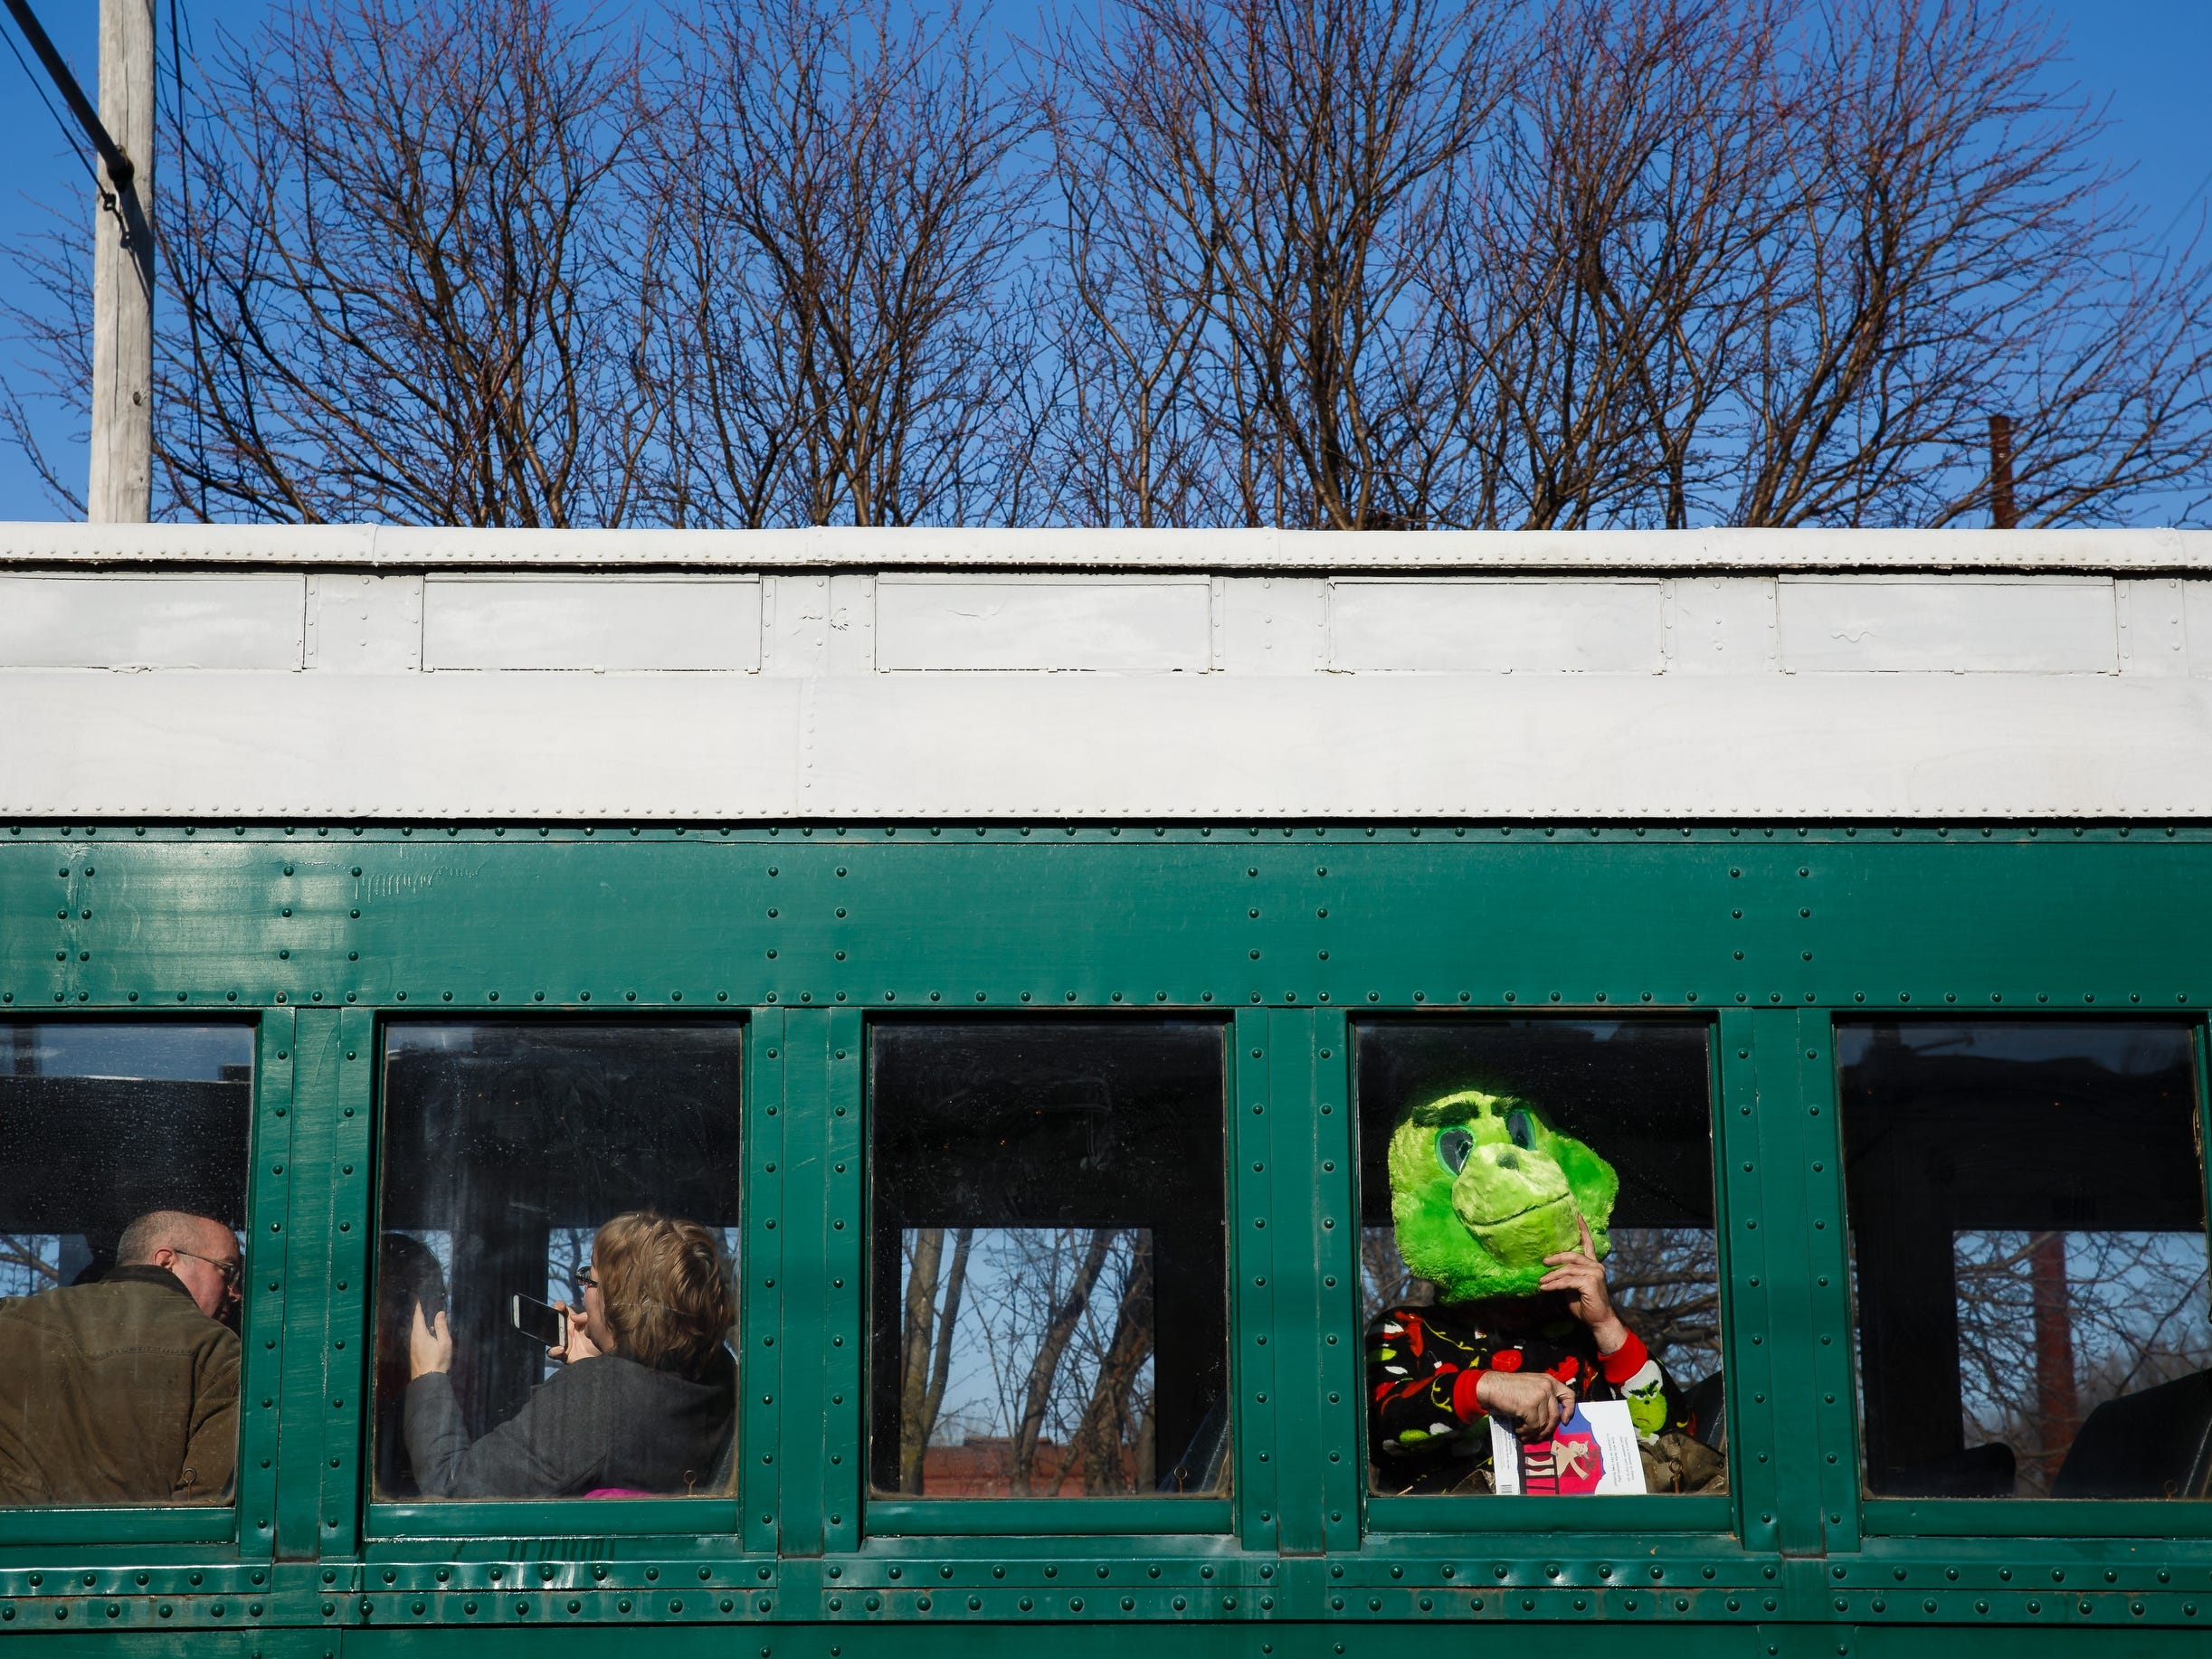 Dressed as the Grinch, Henry Knapp of Panora finds his seat on the Santa Express train at the Boone and Scenic Valley Railroads on Saturday, Dec. 8, 2018, in Boone.